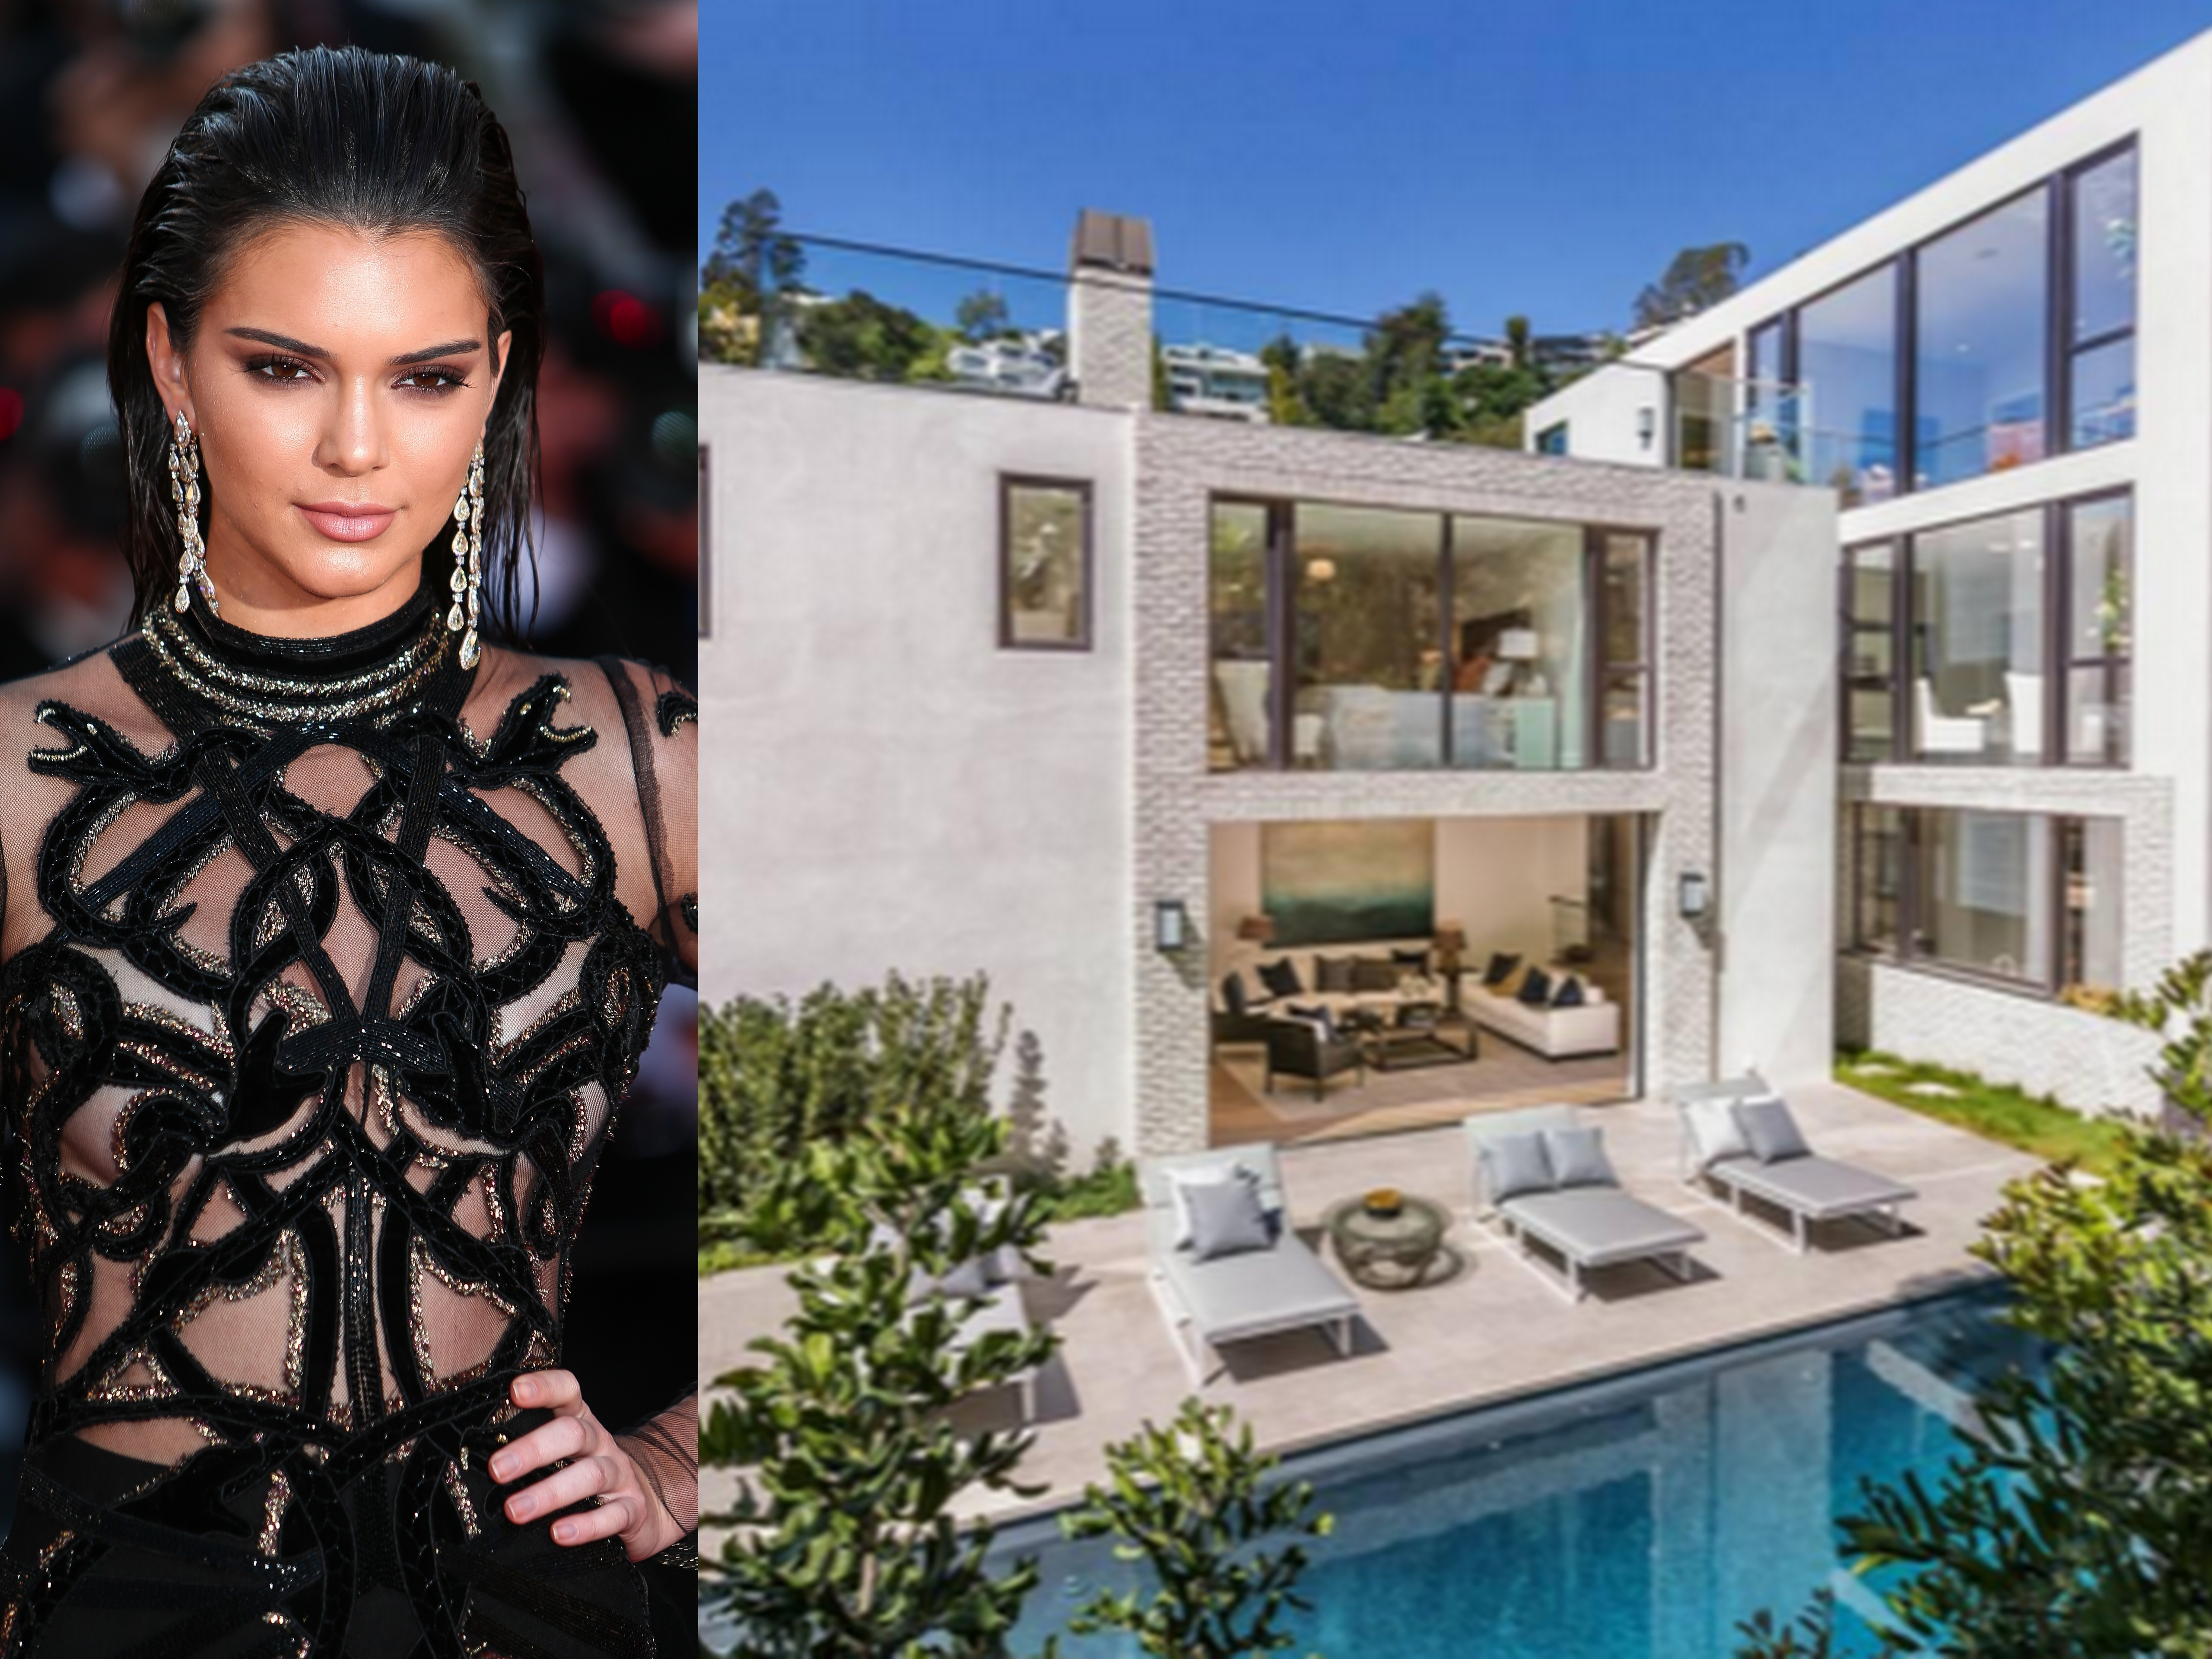 Kendall Jenner opens up about decorating her new home